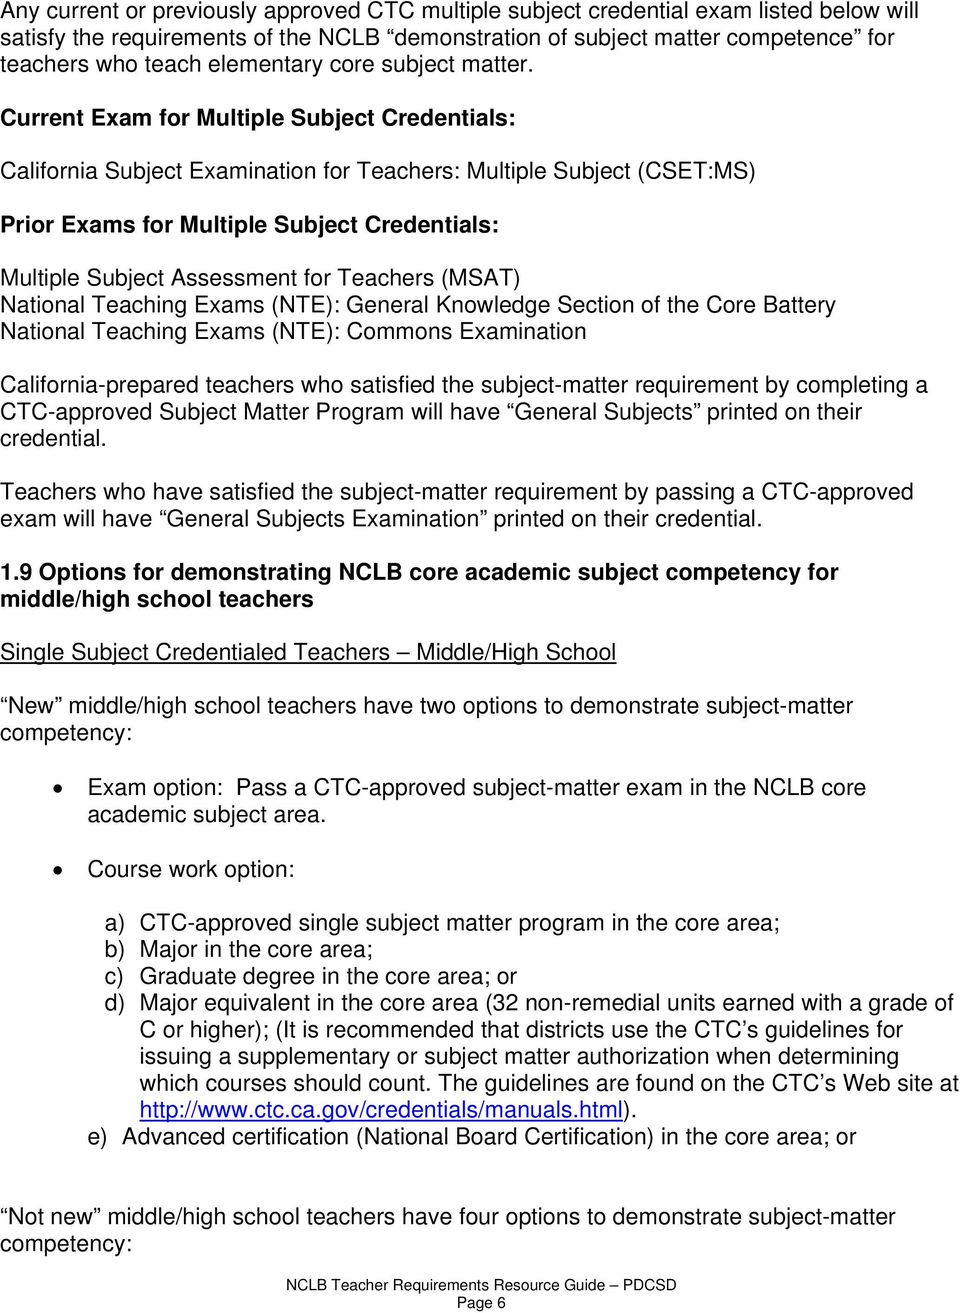 Current Exam for Multiple Subject Credentials: California Subject Examination for Teachers: Multiple Subject (CSET:MS) Prior Exams for Multiple Subject Credentials: Multiple Subject Assessment for